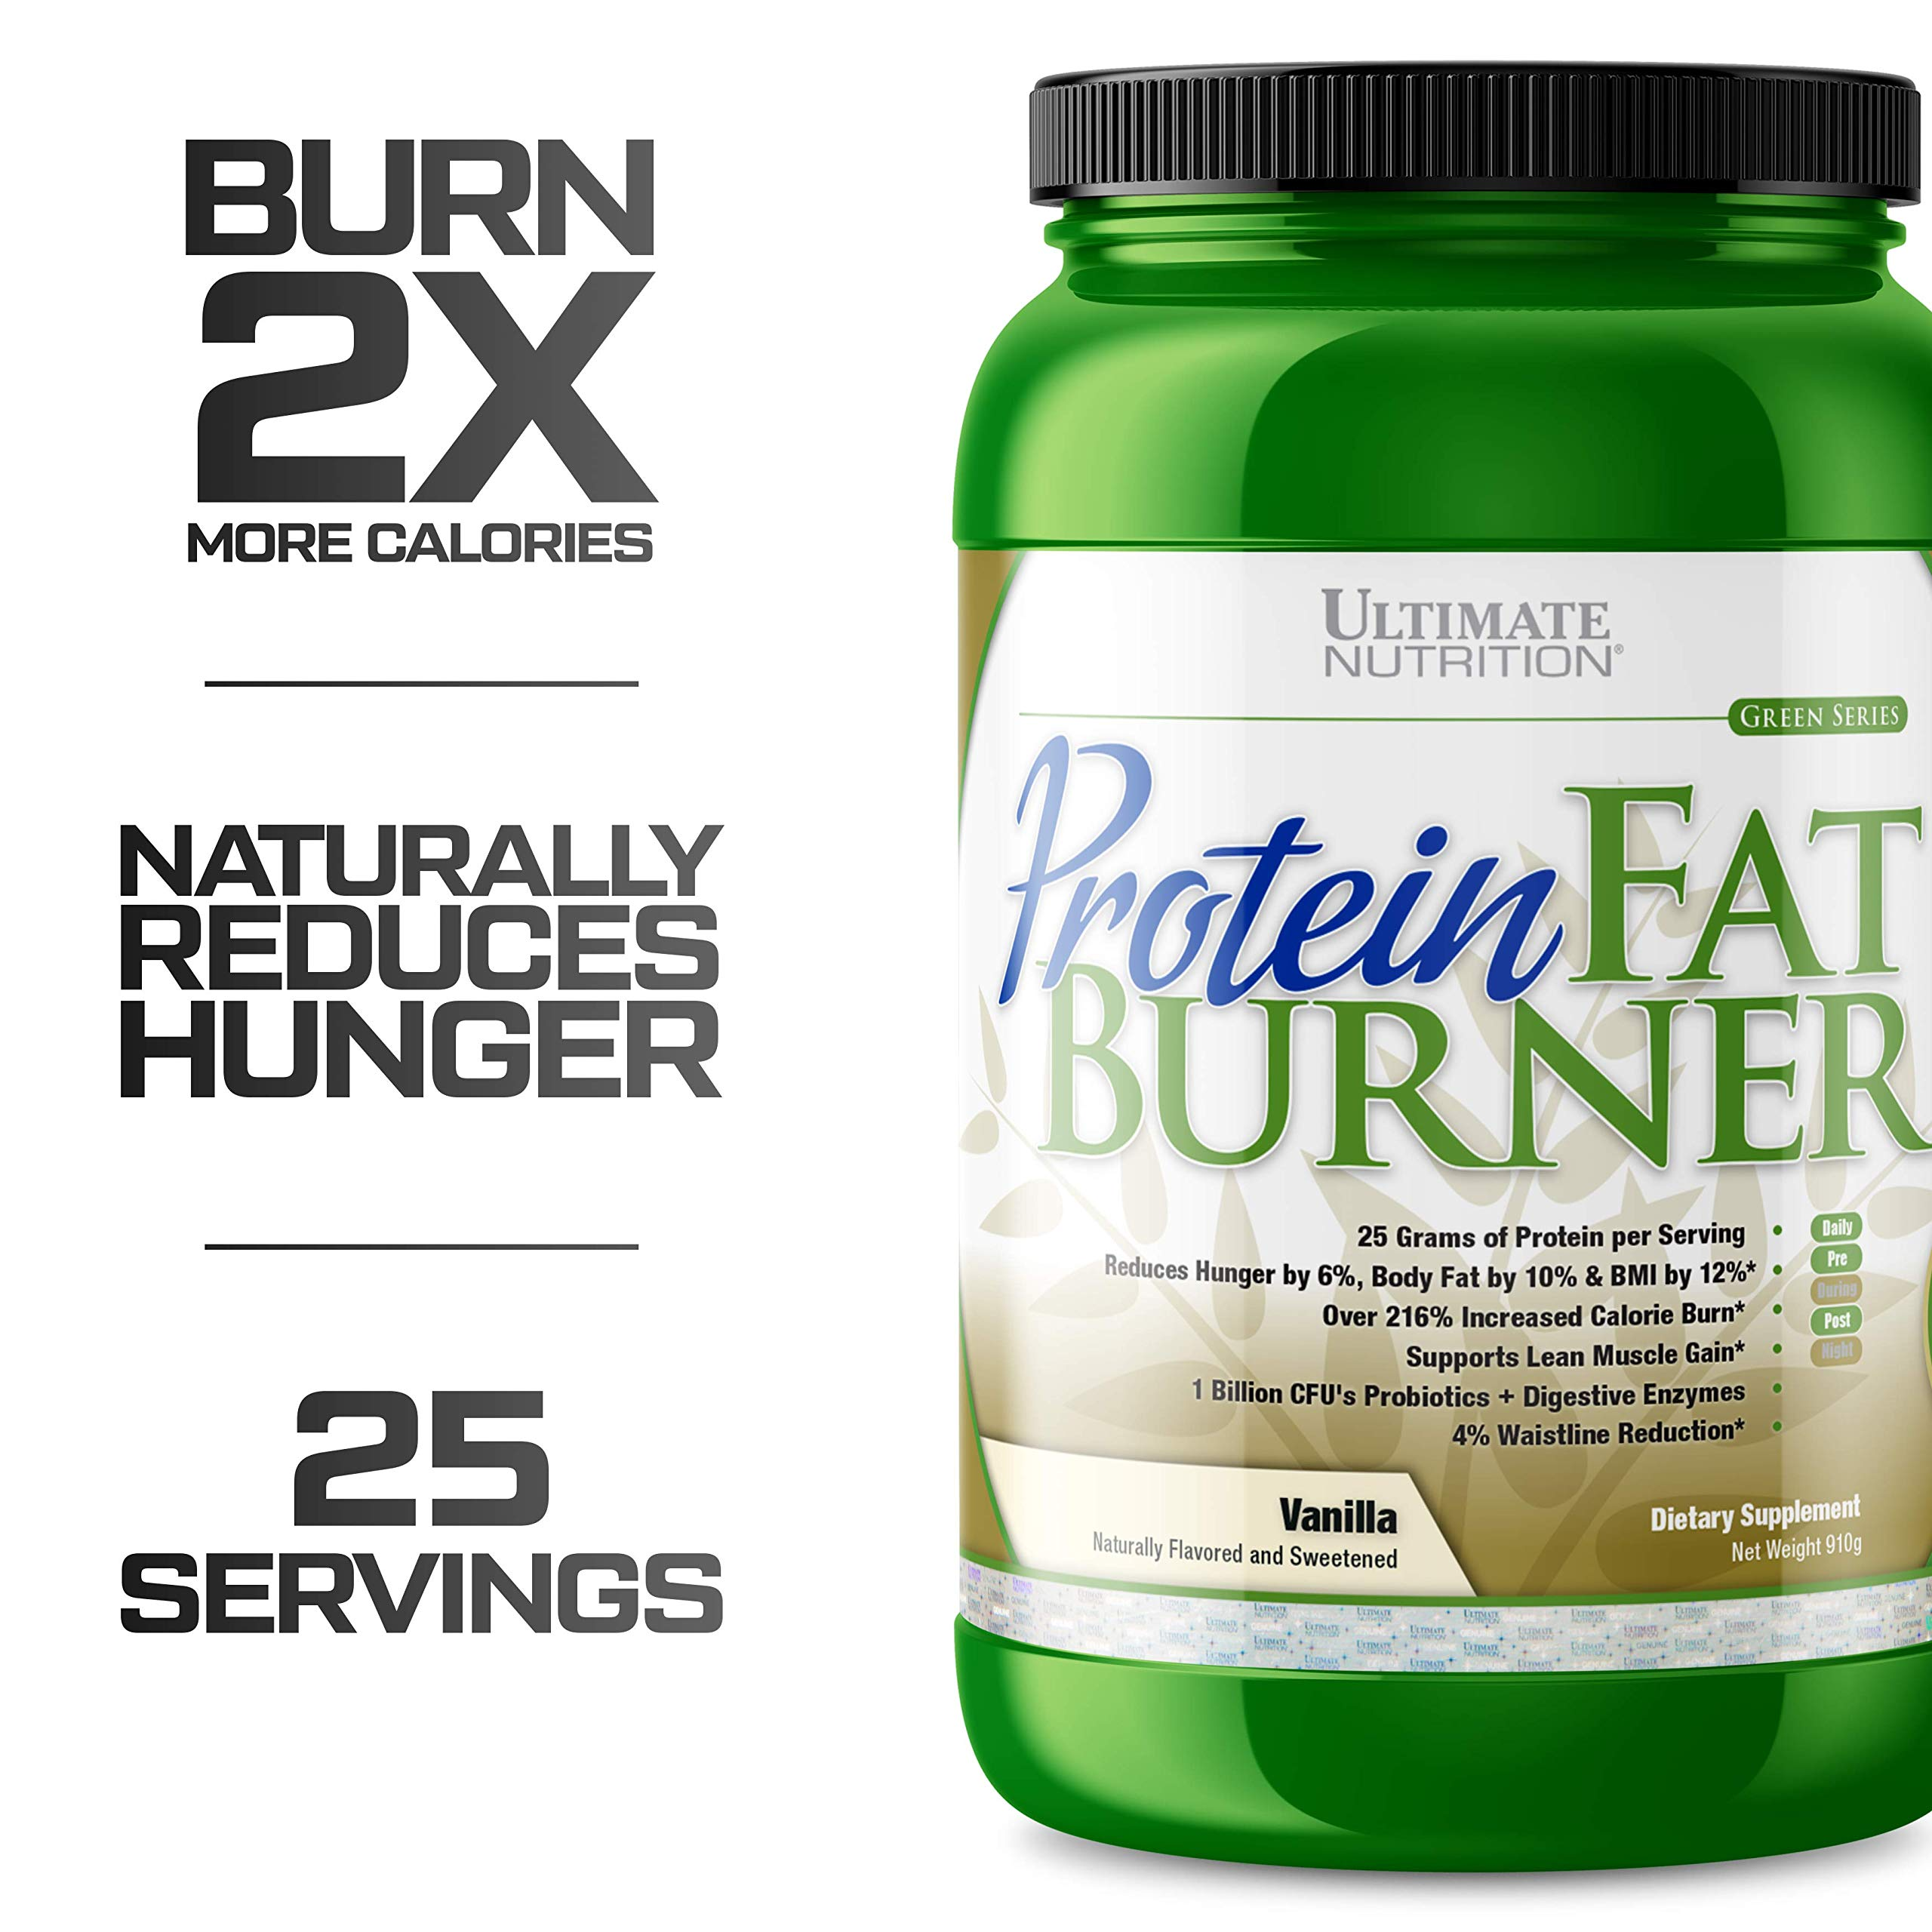 Ultimate Nutrition Protein Fat Burner Whey Protein Powder for Weight Loss - Keto Friendly with Natural Hunger Reducing Ingredients, 25 Servings, Vanilla by Ultimate Nutrition